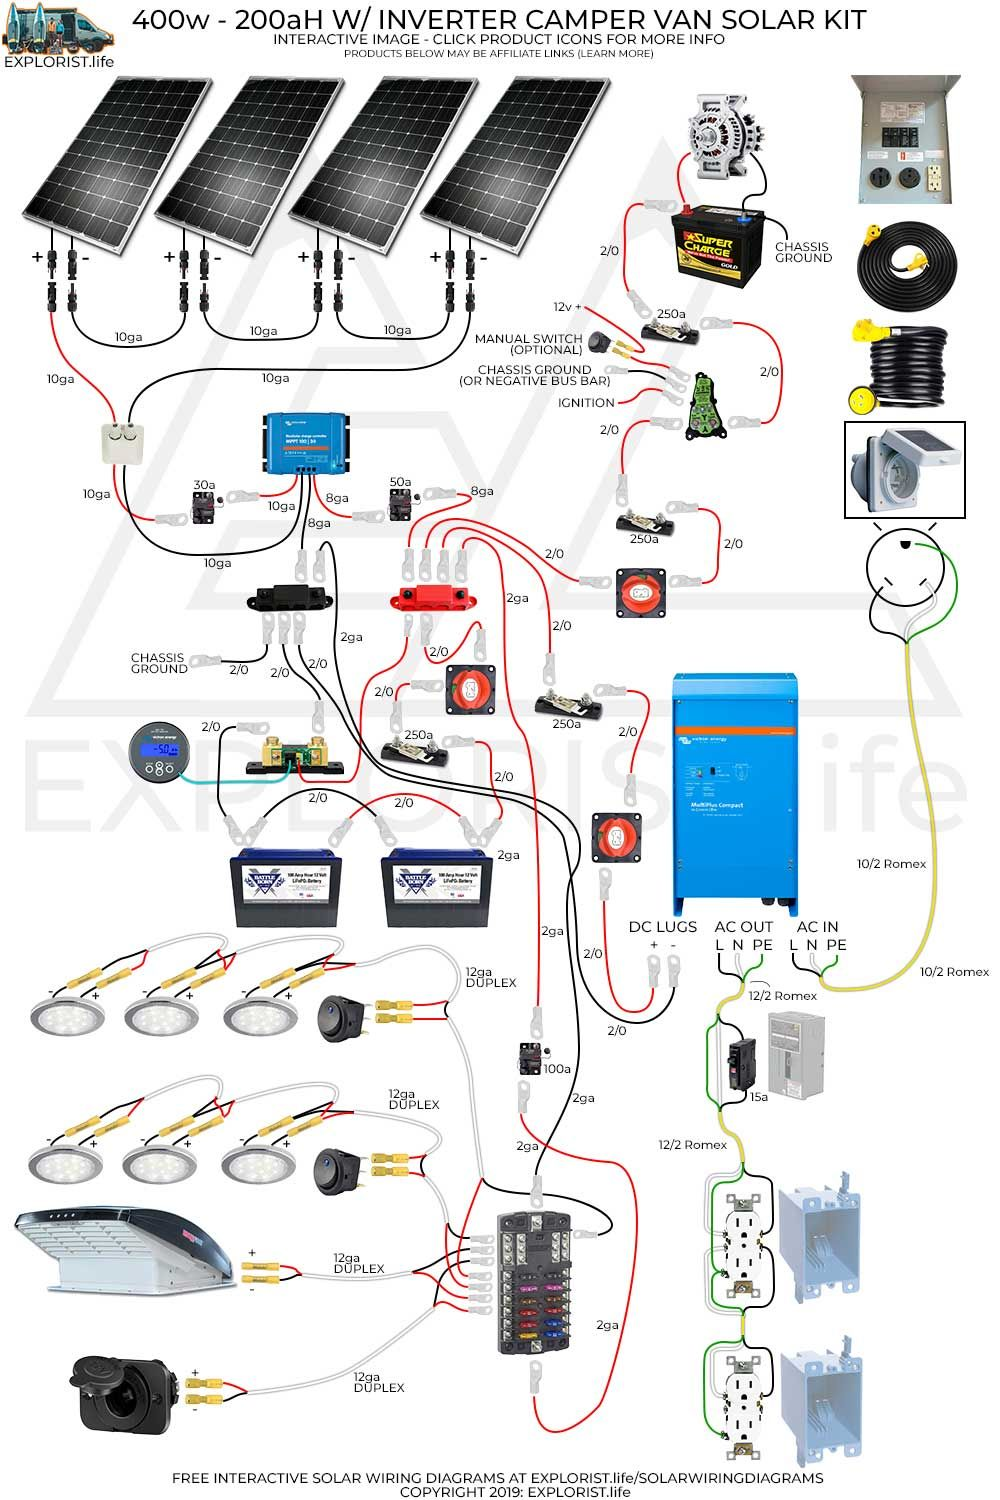 hight resolution of interactive diy solar wiring diagrams for campers van s rv s interactive home wiring diagram interactive